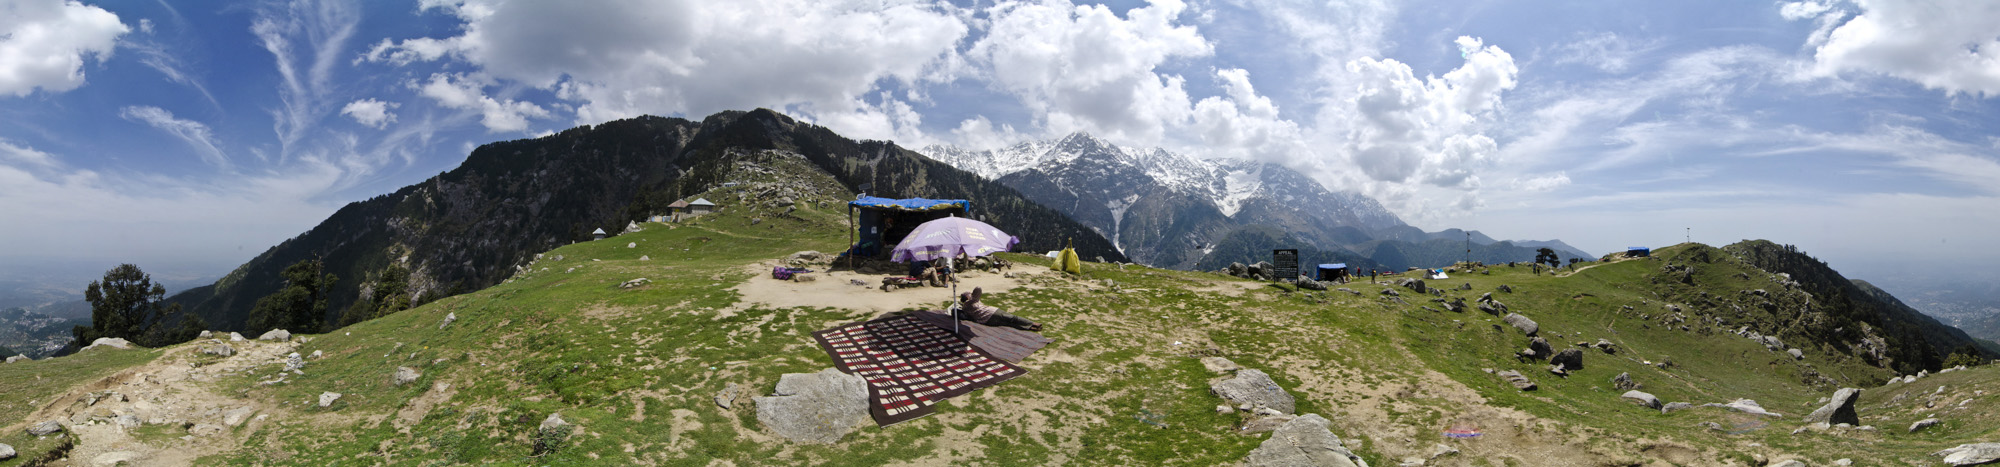 Triund Tea Shop - Himachel Pradesh, India